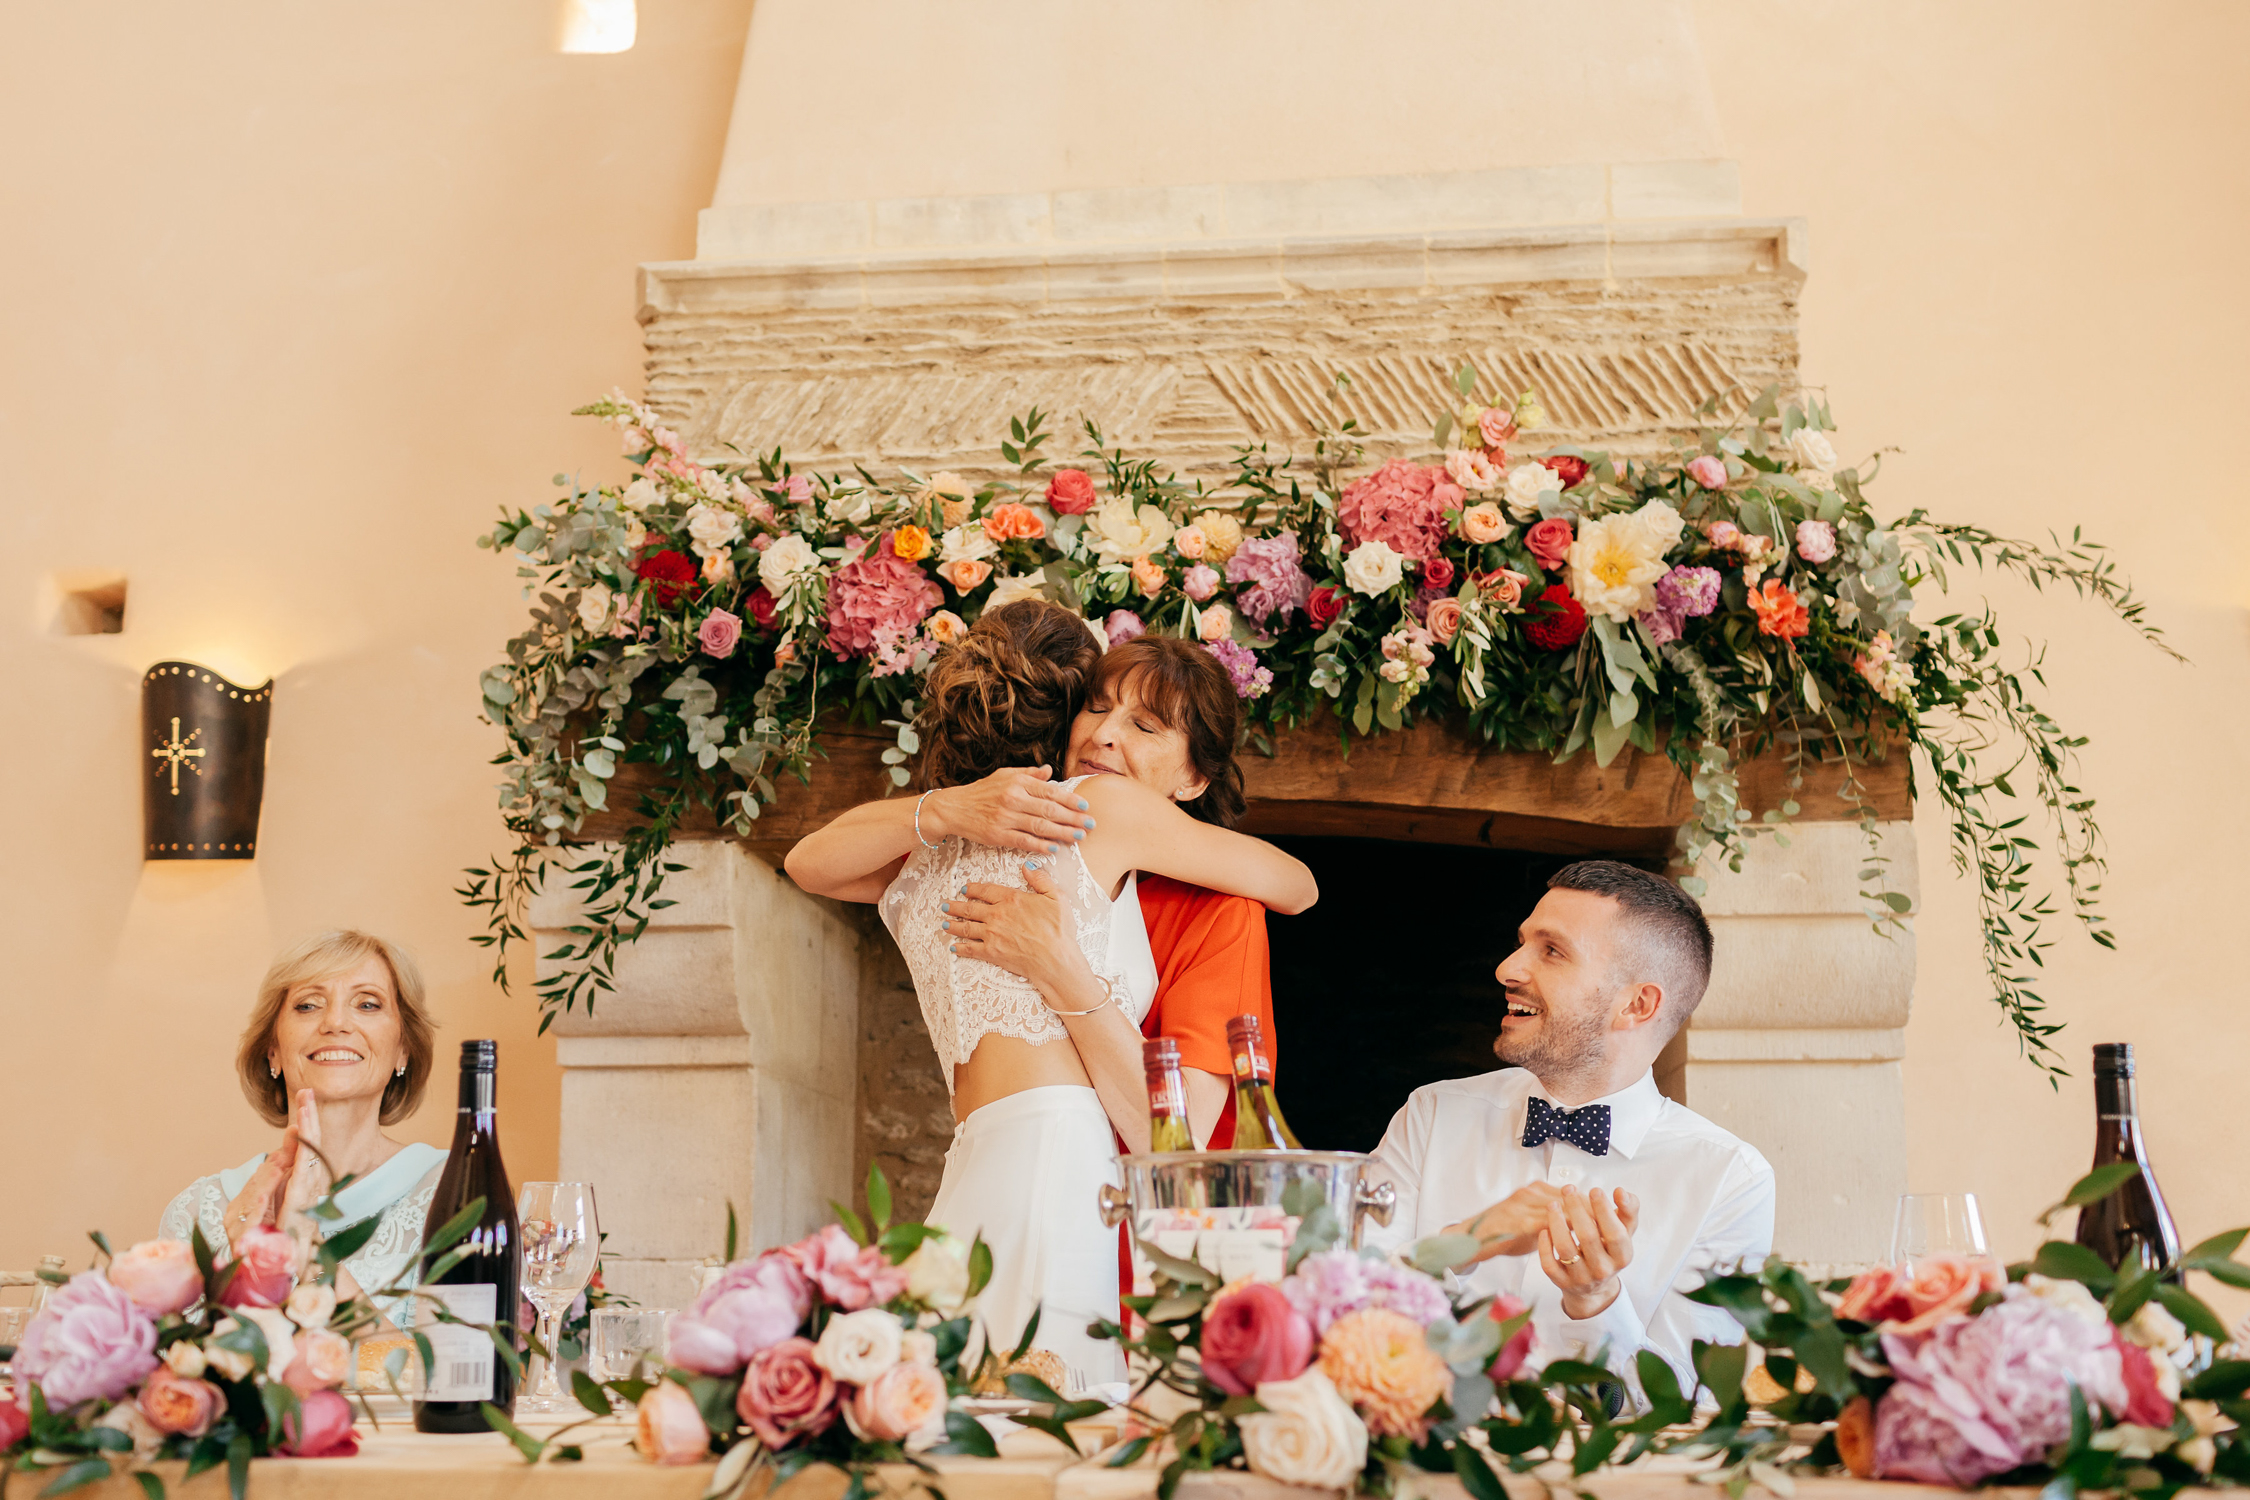 candid wedding photography at oxleaze barn